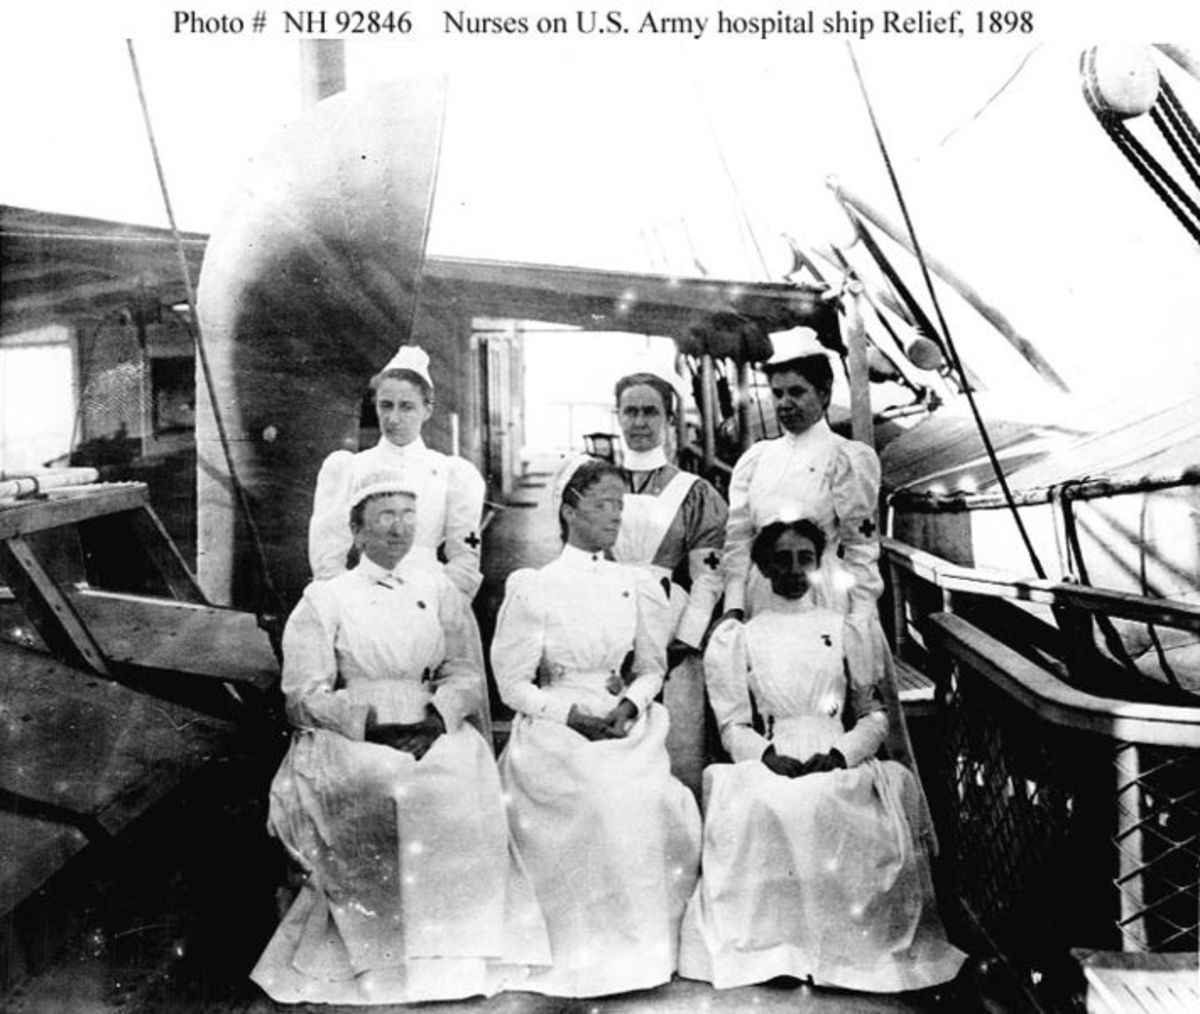 Nurses on SS Relief in 1898.